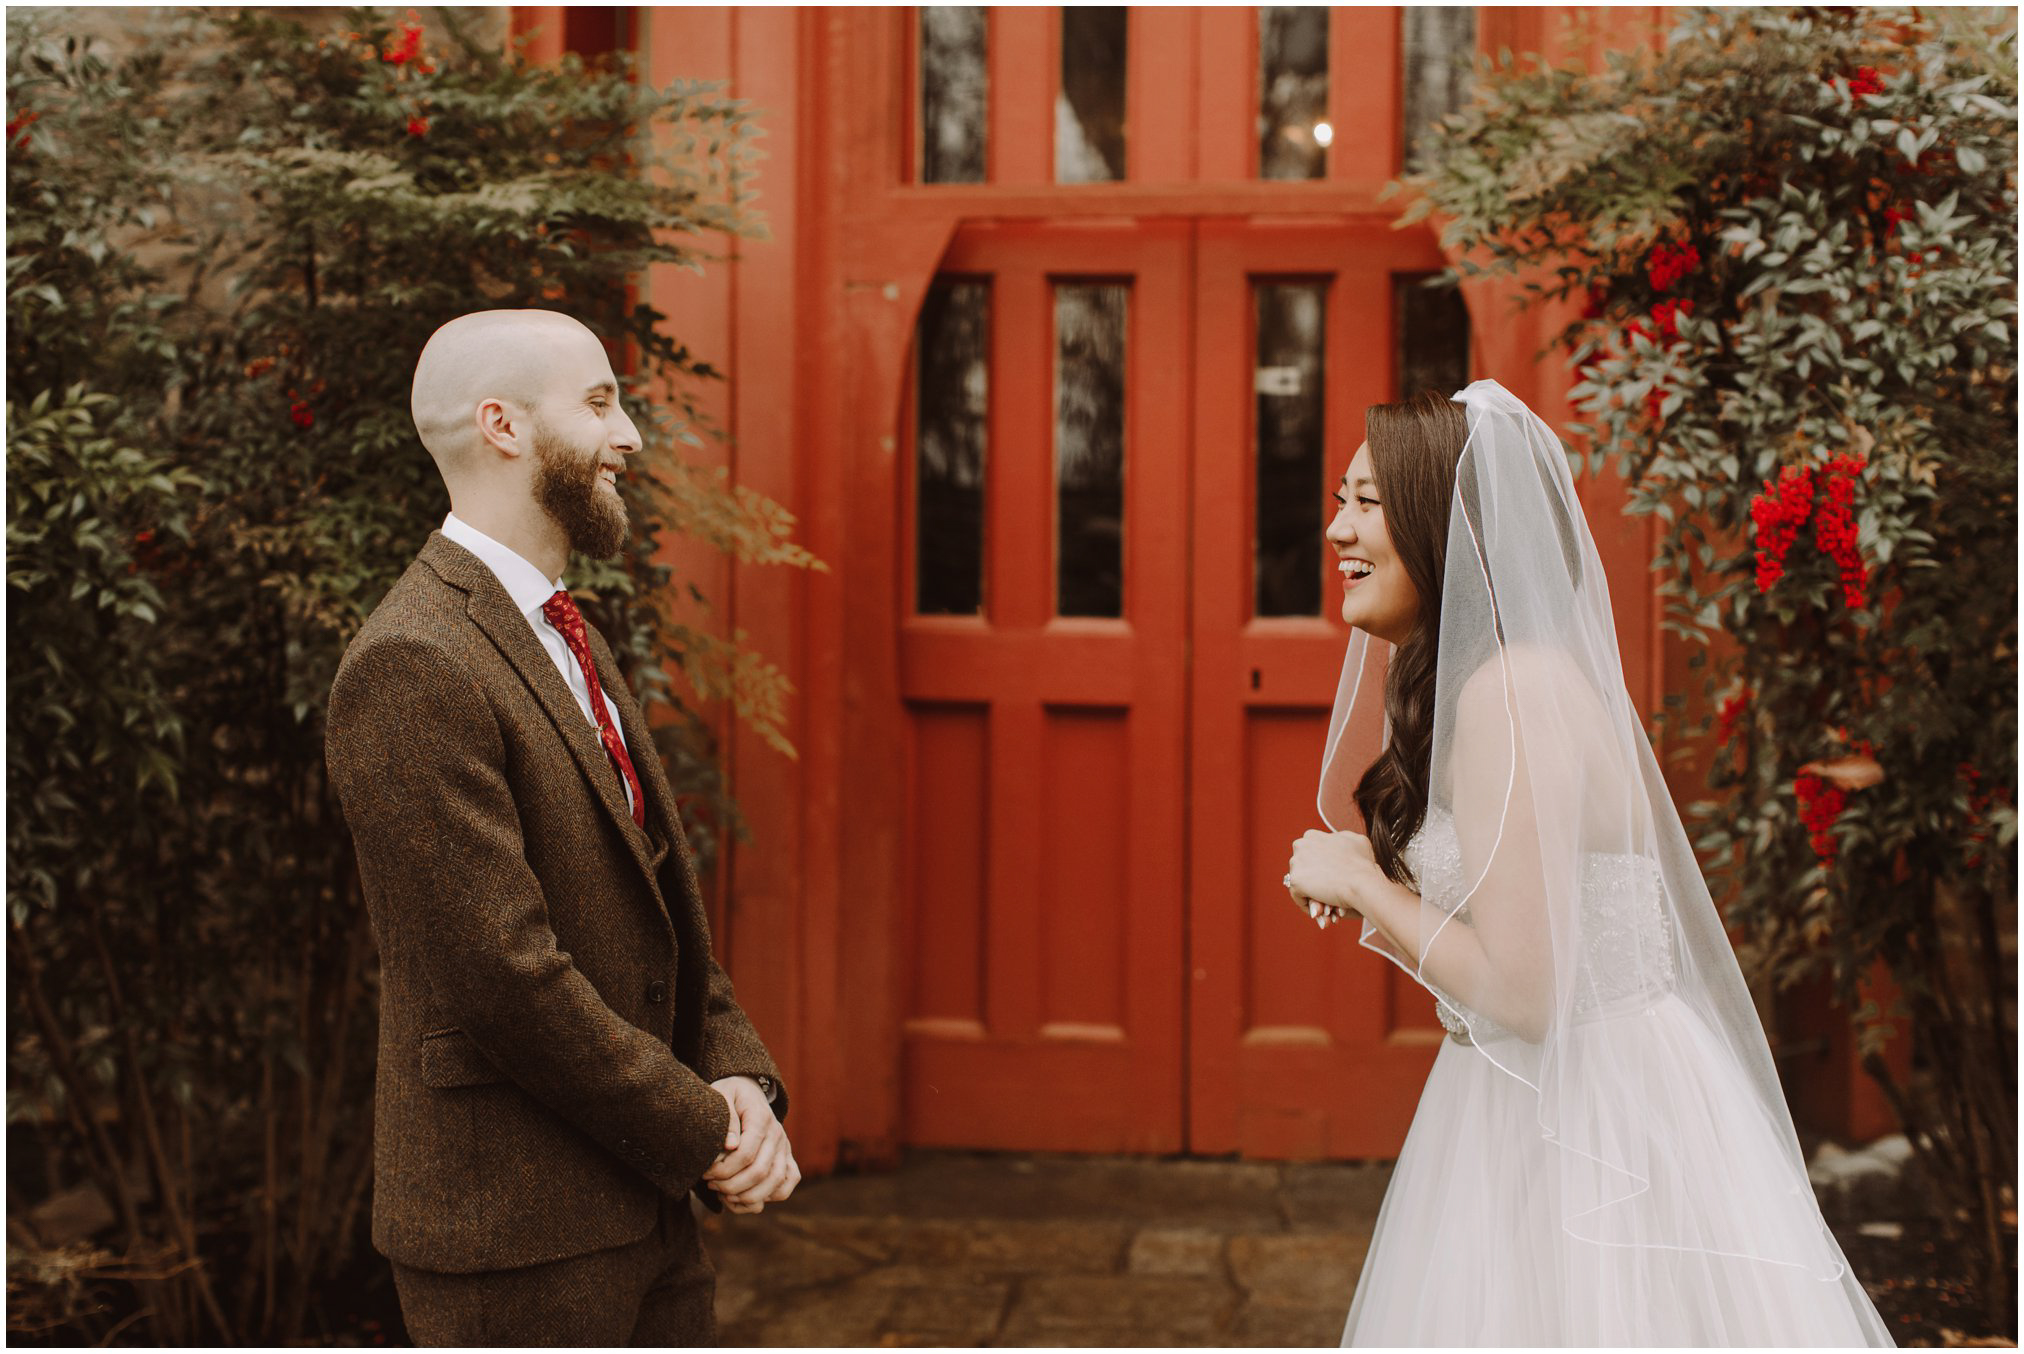 Magical Harry Potter Themed Wedding at the Cloisters Castle Wedding Venue in Maryland